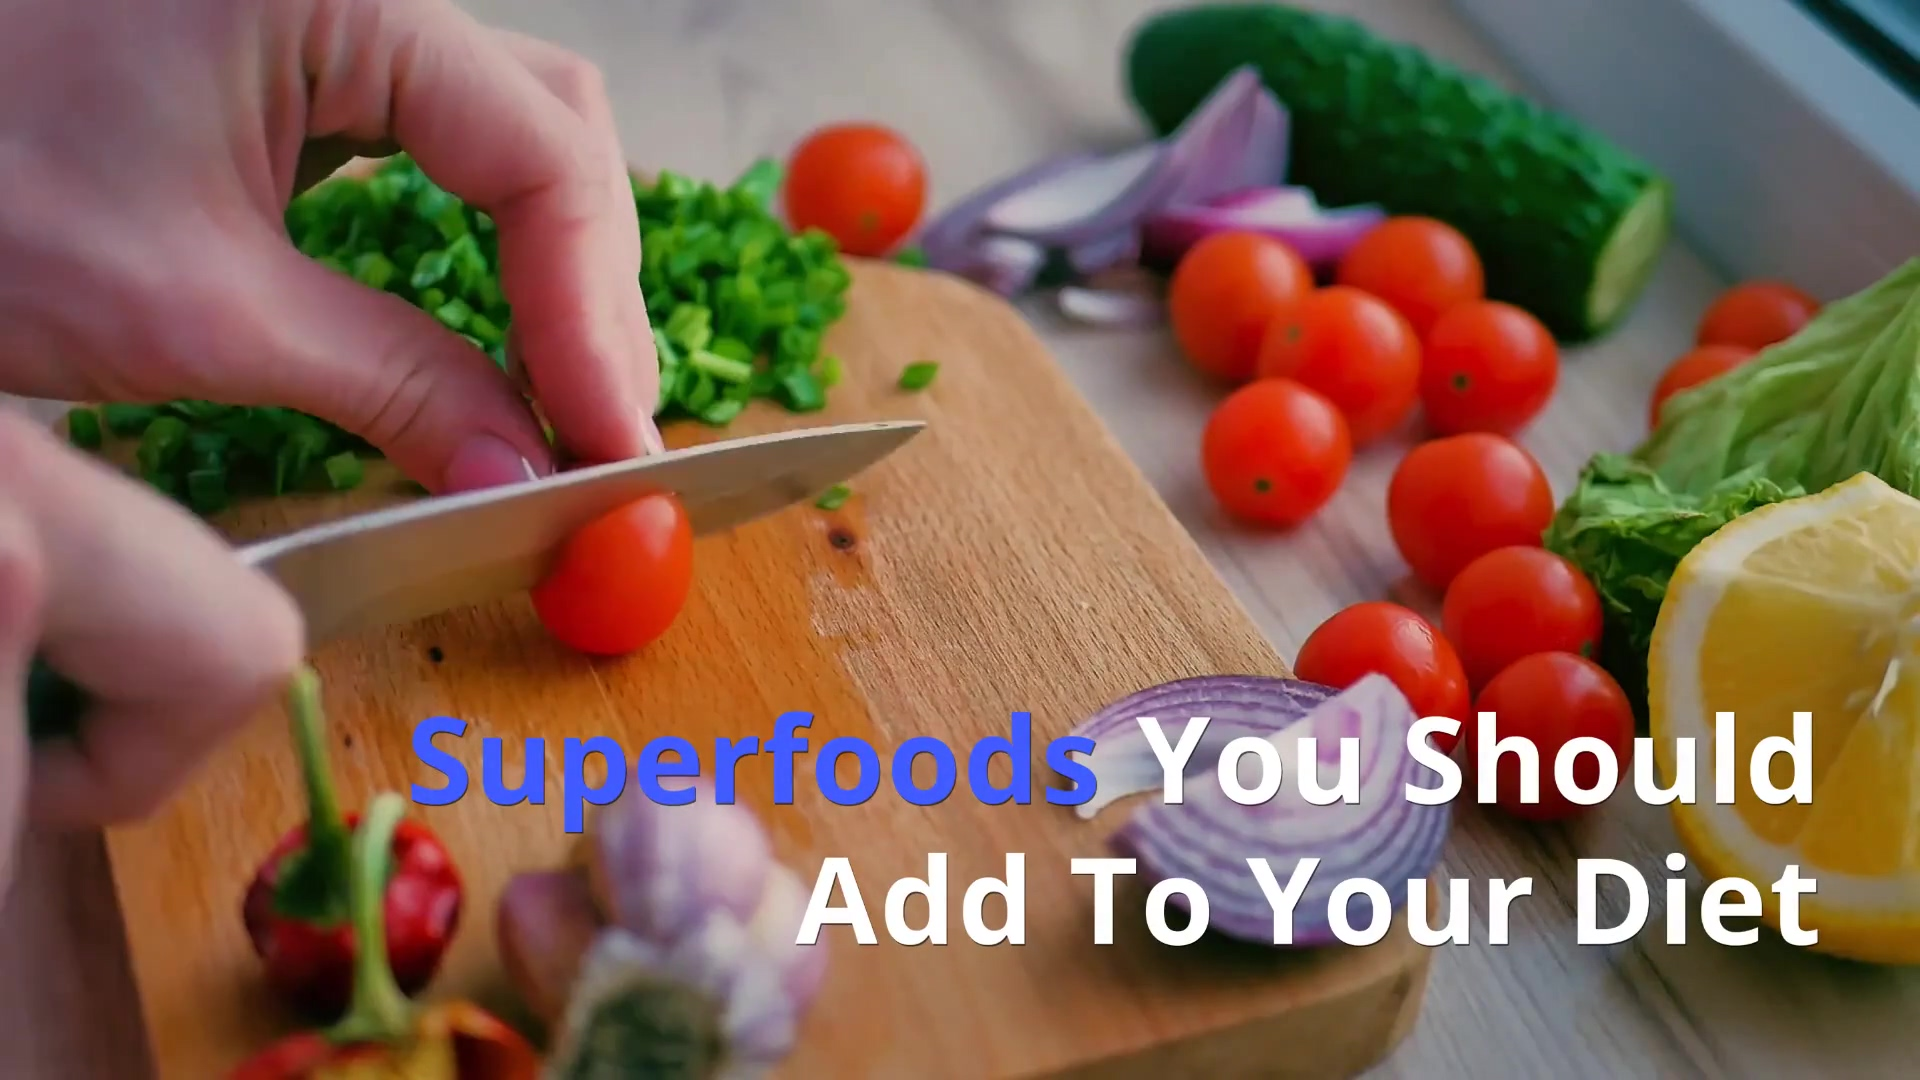 Superfoods_You_Should_Add_To_Your_Diet